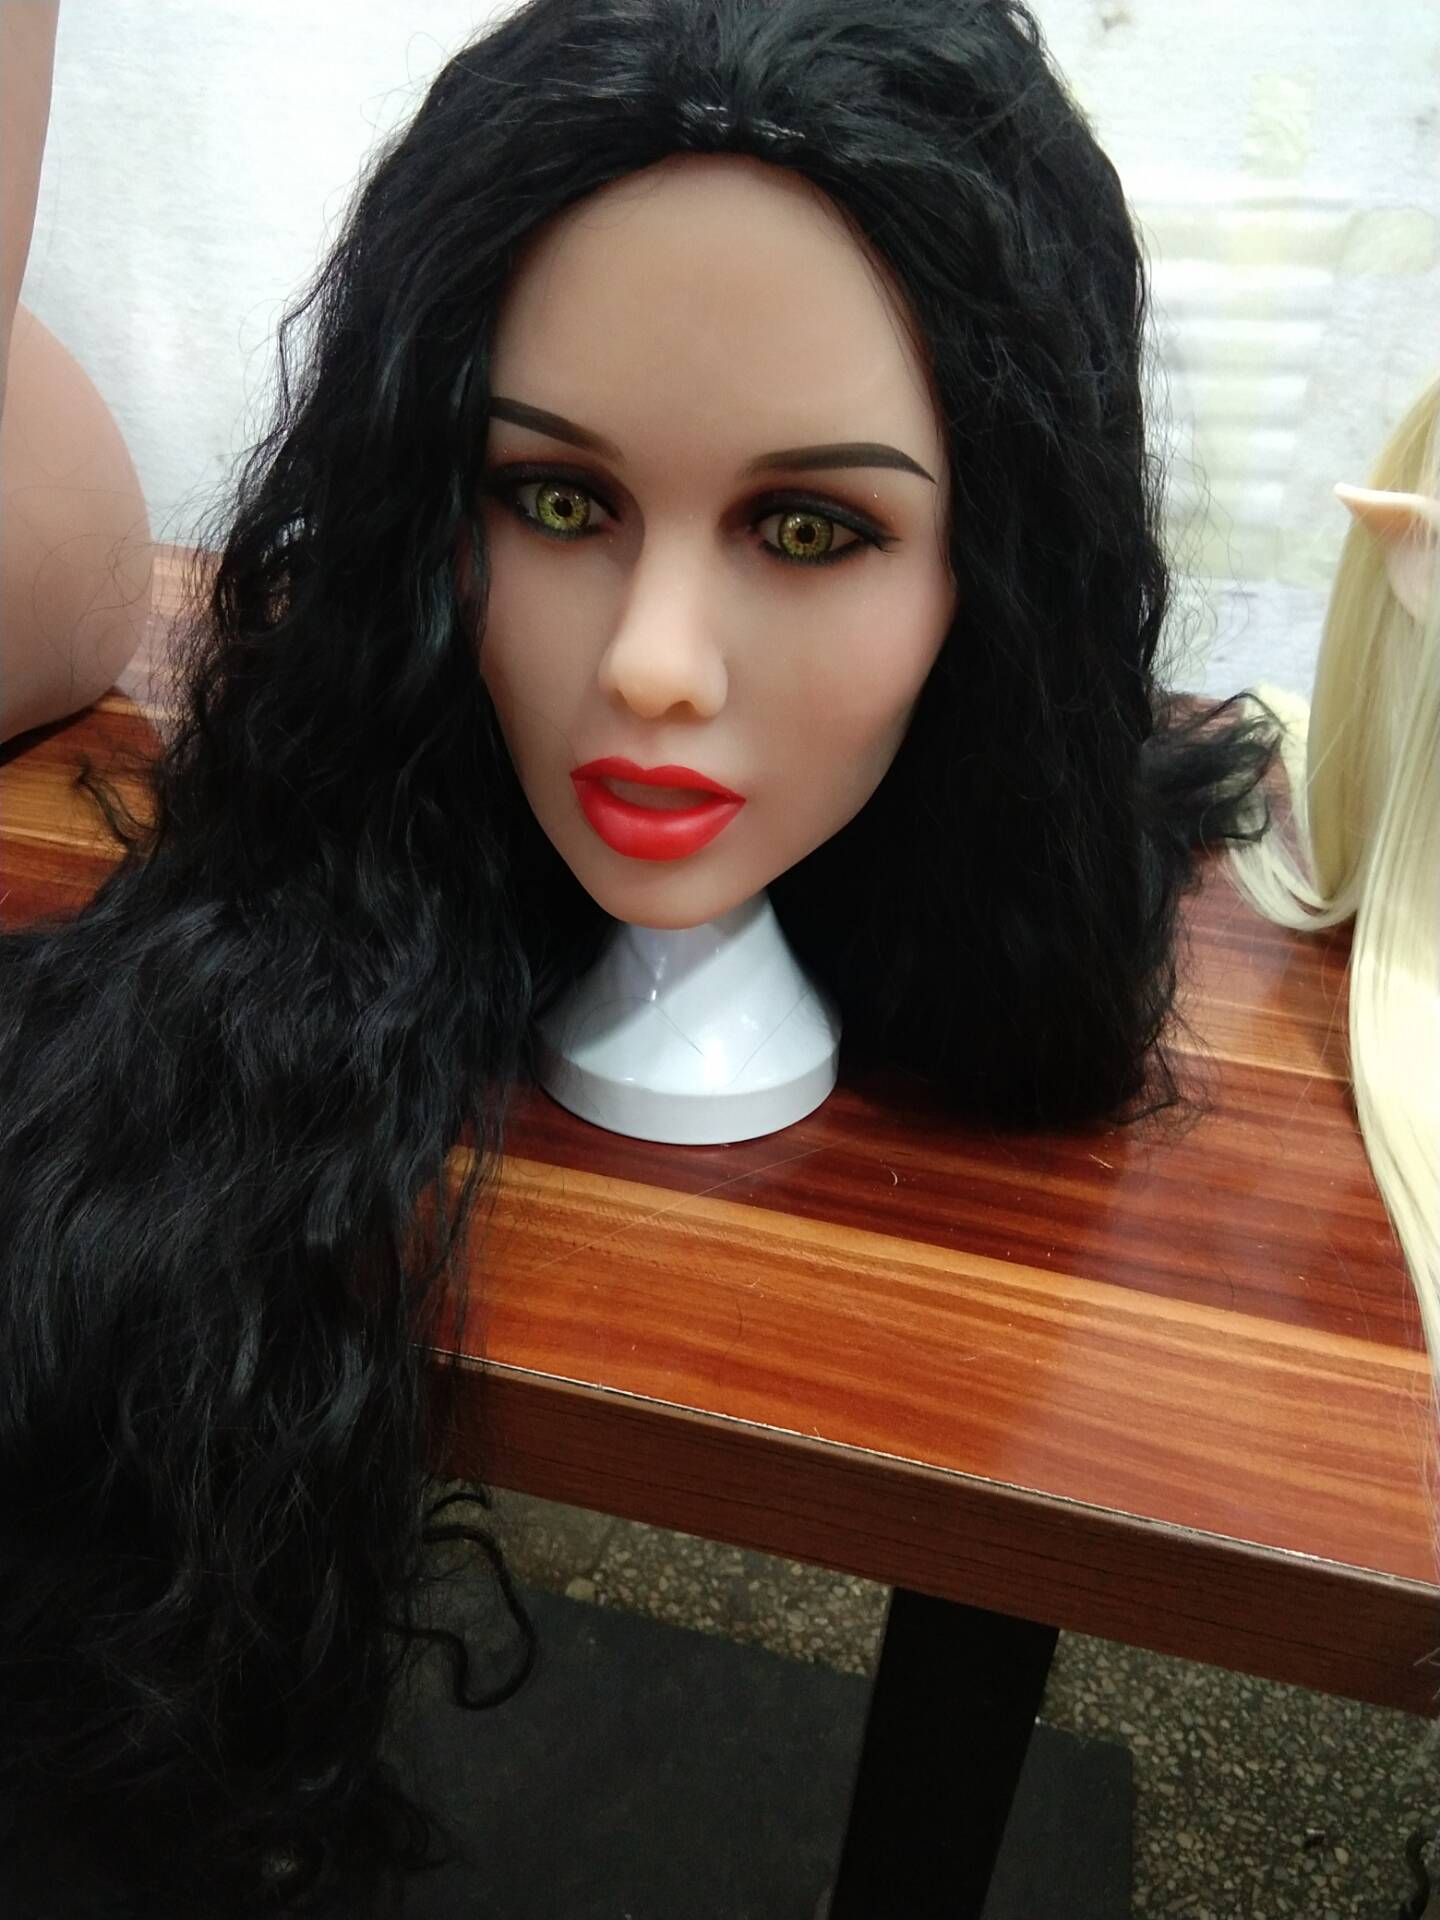 Oral <font><b>Sex</b></font> <font><b>Doll</b></font> Head For Love <font><b>Doll</b></font> <font><b>Silicone</b></font> Heads With Oral <font><b>Sex</b></font> <font><b>Sex</b></font> Products for 140-170cm body image